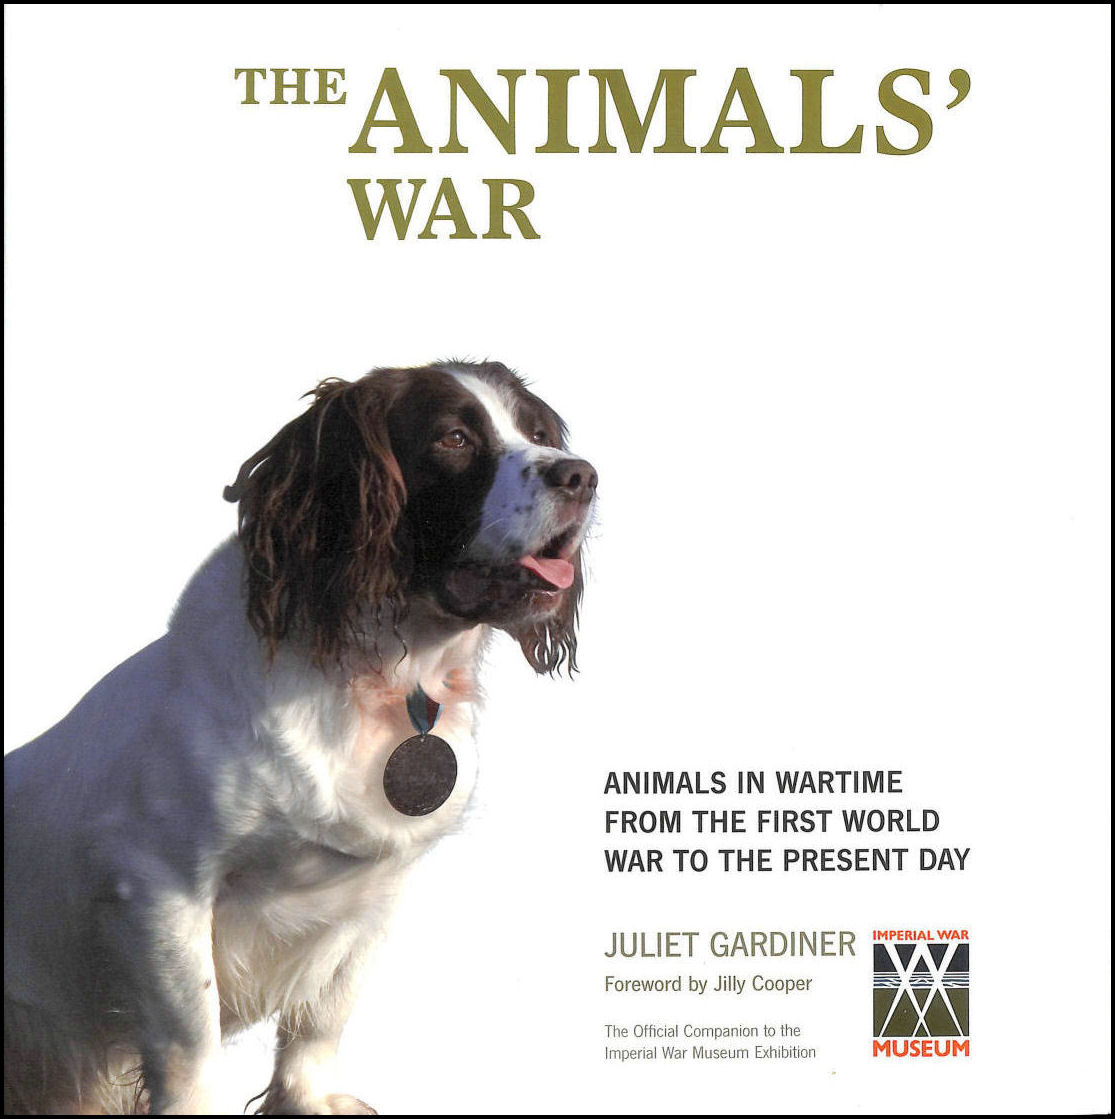 Image for The Animals' War: Animals in Wartime from the First World War to the Present Day